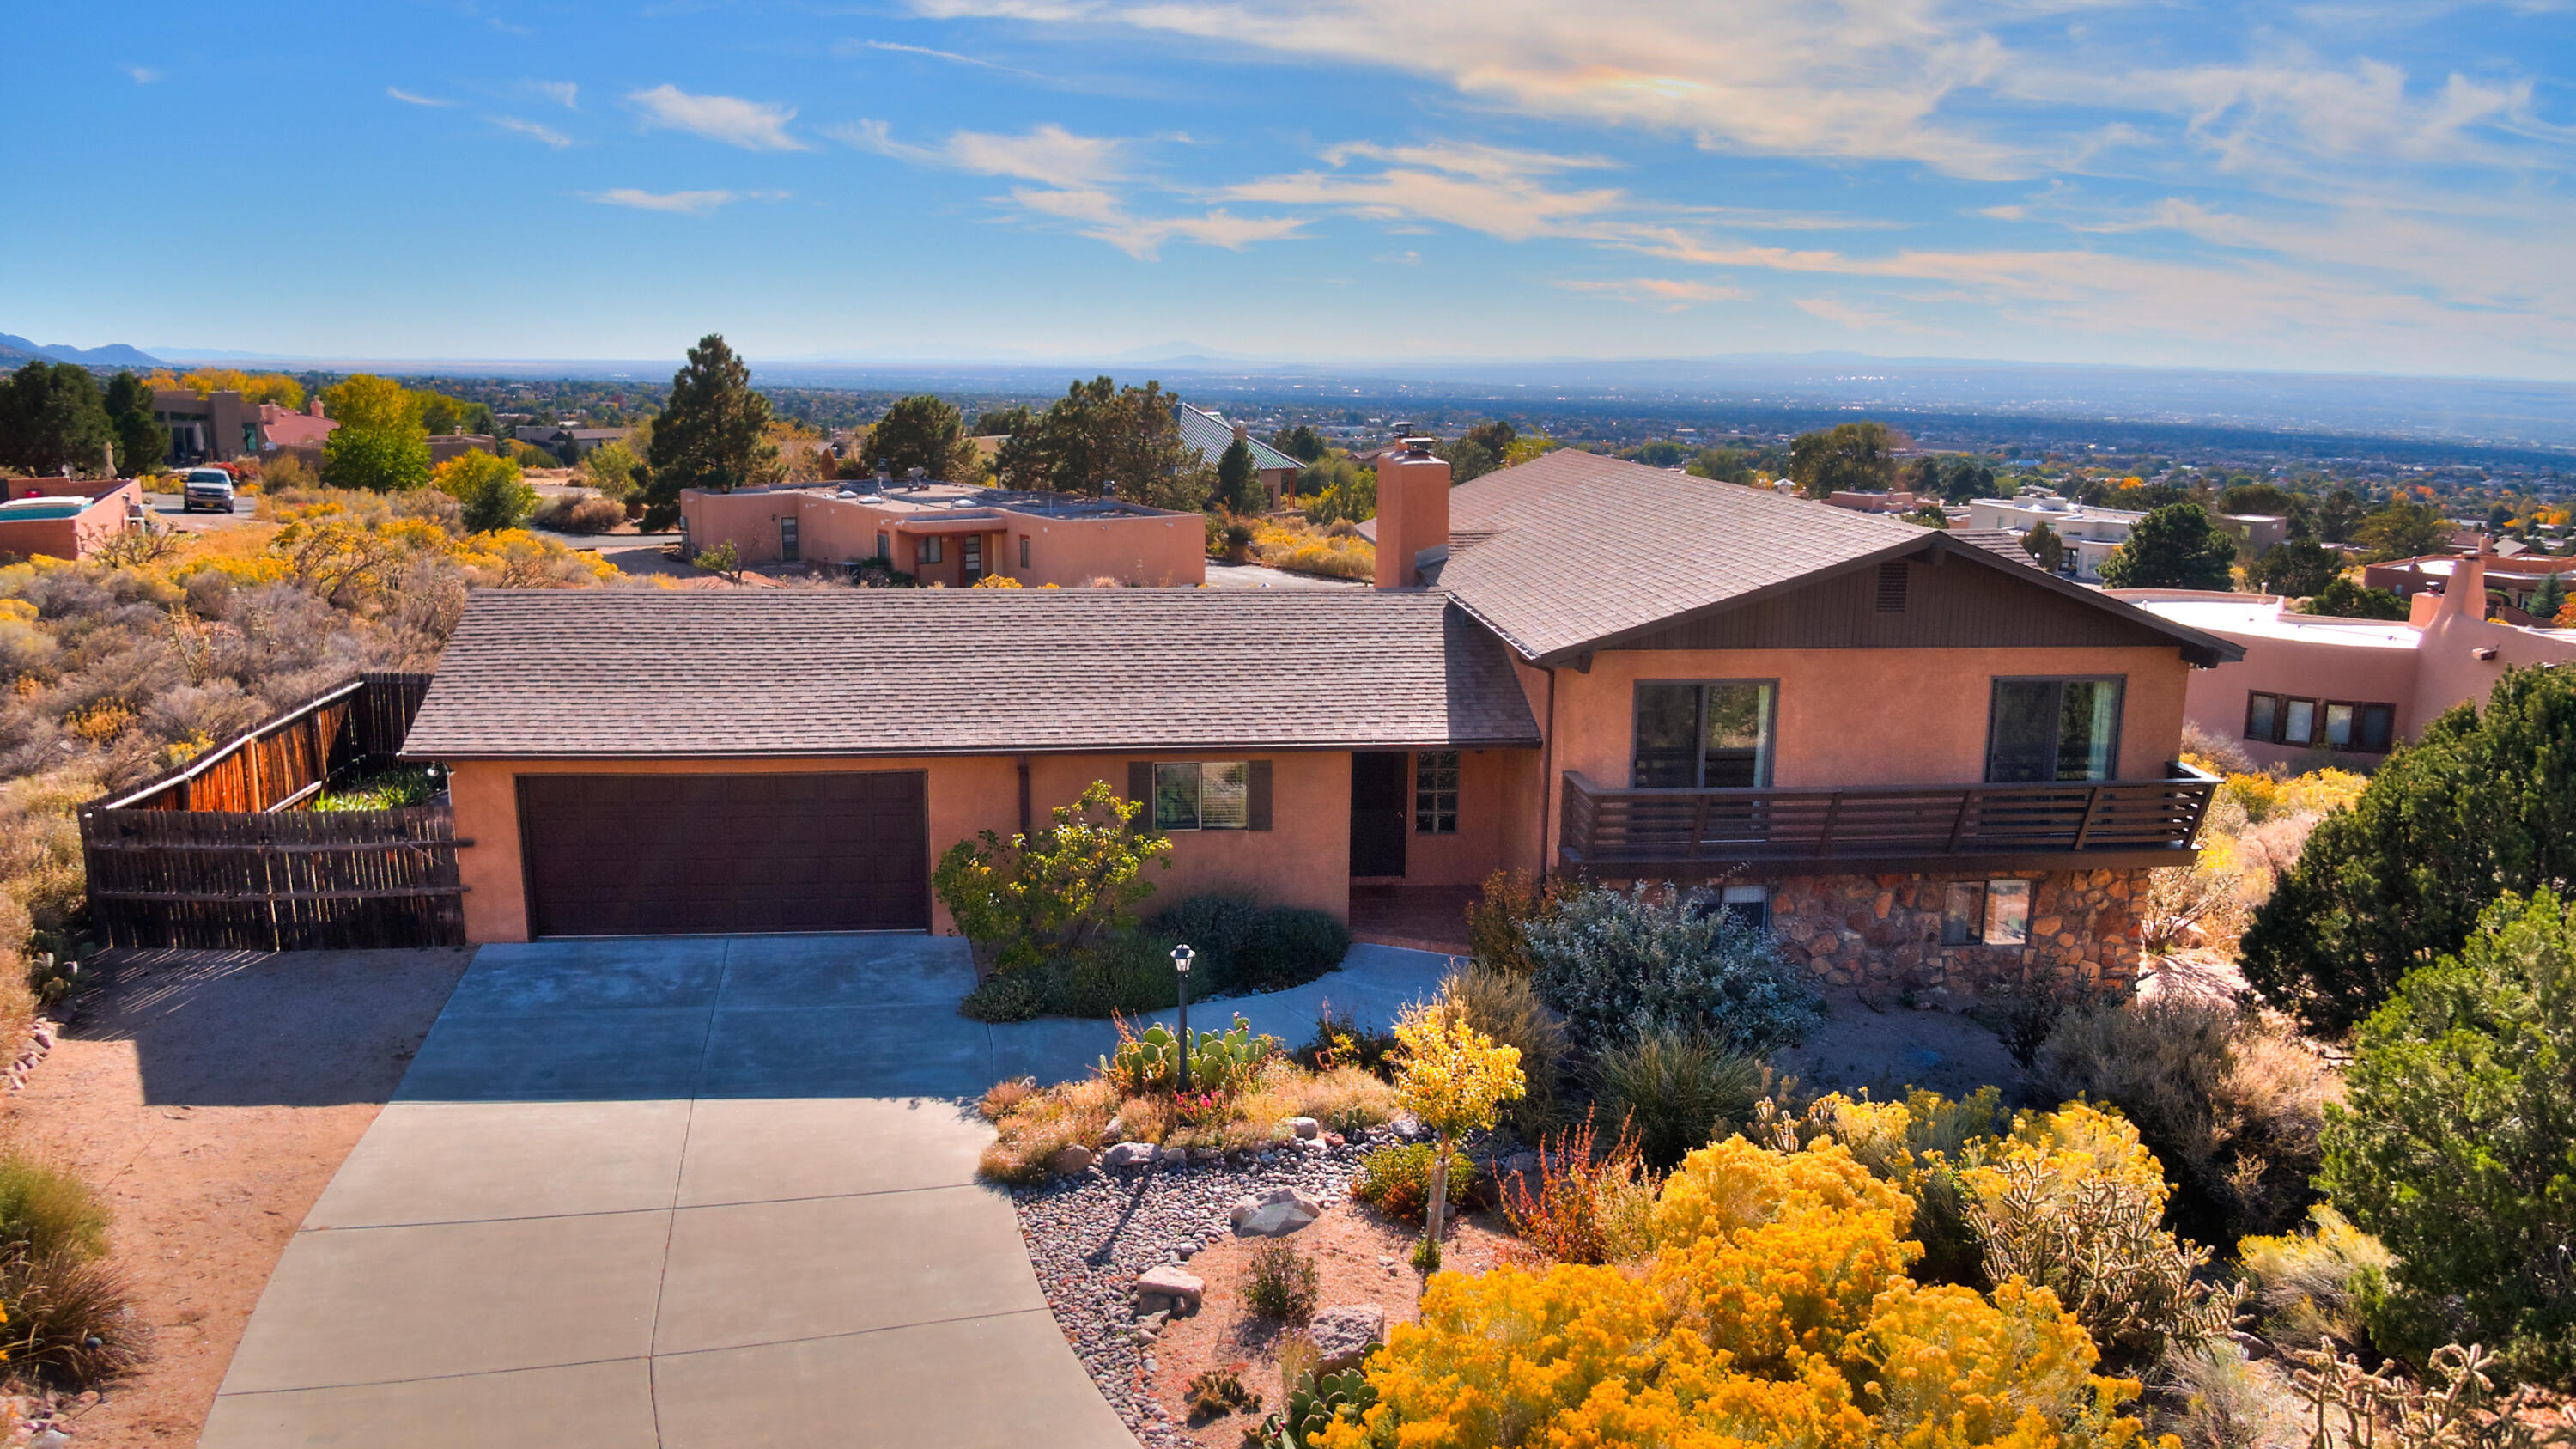 Luscious Location - Dramatically situated at the base of the Sandias, just two blocks to the National Forest and all it has to offer. Outstanding vistas from mountains to the Rio Grande Valley in all directions with exceptional natural light. Huge Prideof Ownership over the past 33 plus years - same owner proud! Continual upgrades/updates made throughout! Huge versatility in floor plan with room to roam plus multi use functionality. Multiple living and dining areas, inviting kitchen open to Family Room combo, bedroom/office with optional Murphy bed and more. The outdoor living includes two covered patios, covered view deck and view balcony - all framing wonderful views.